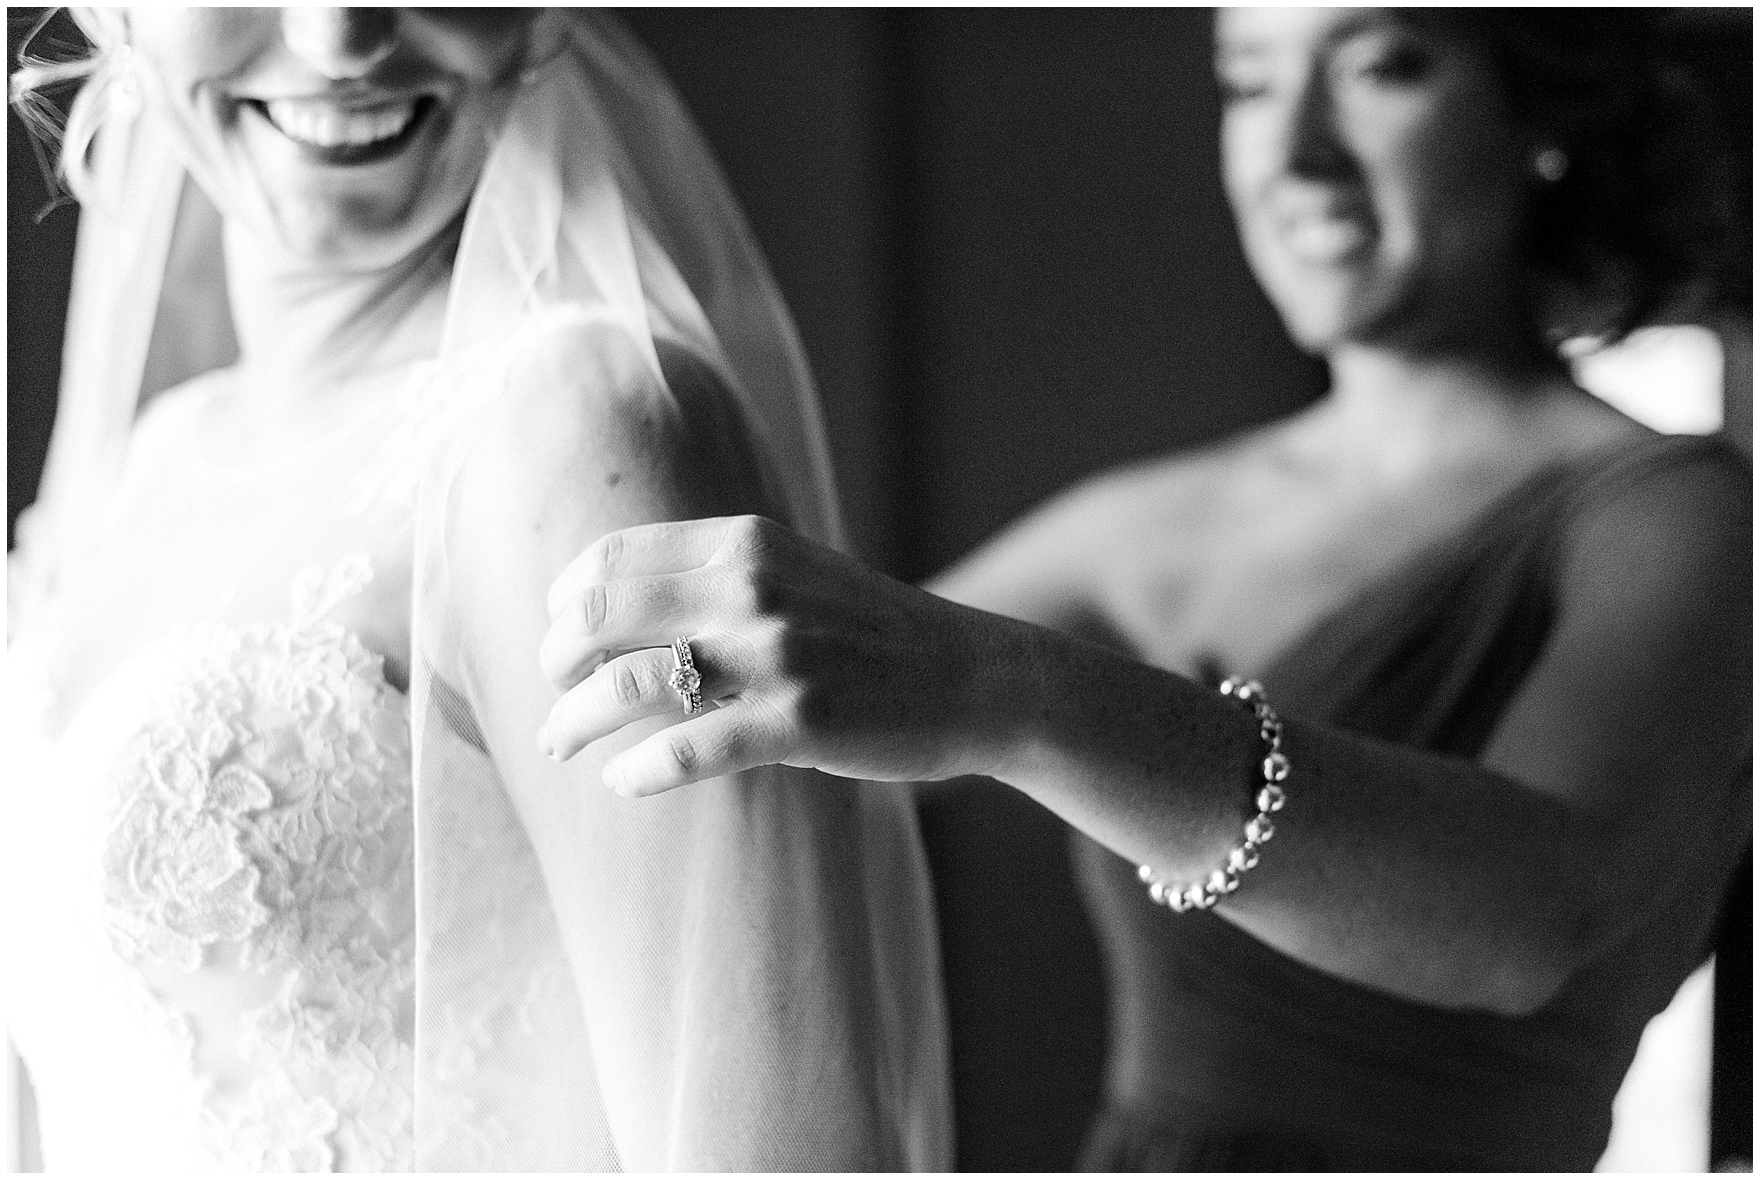 The maid of honor adjusts the bride's veil before a Glen Club Glenview Illinois wedding.